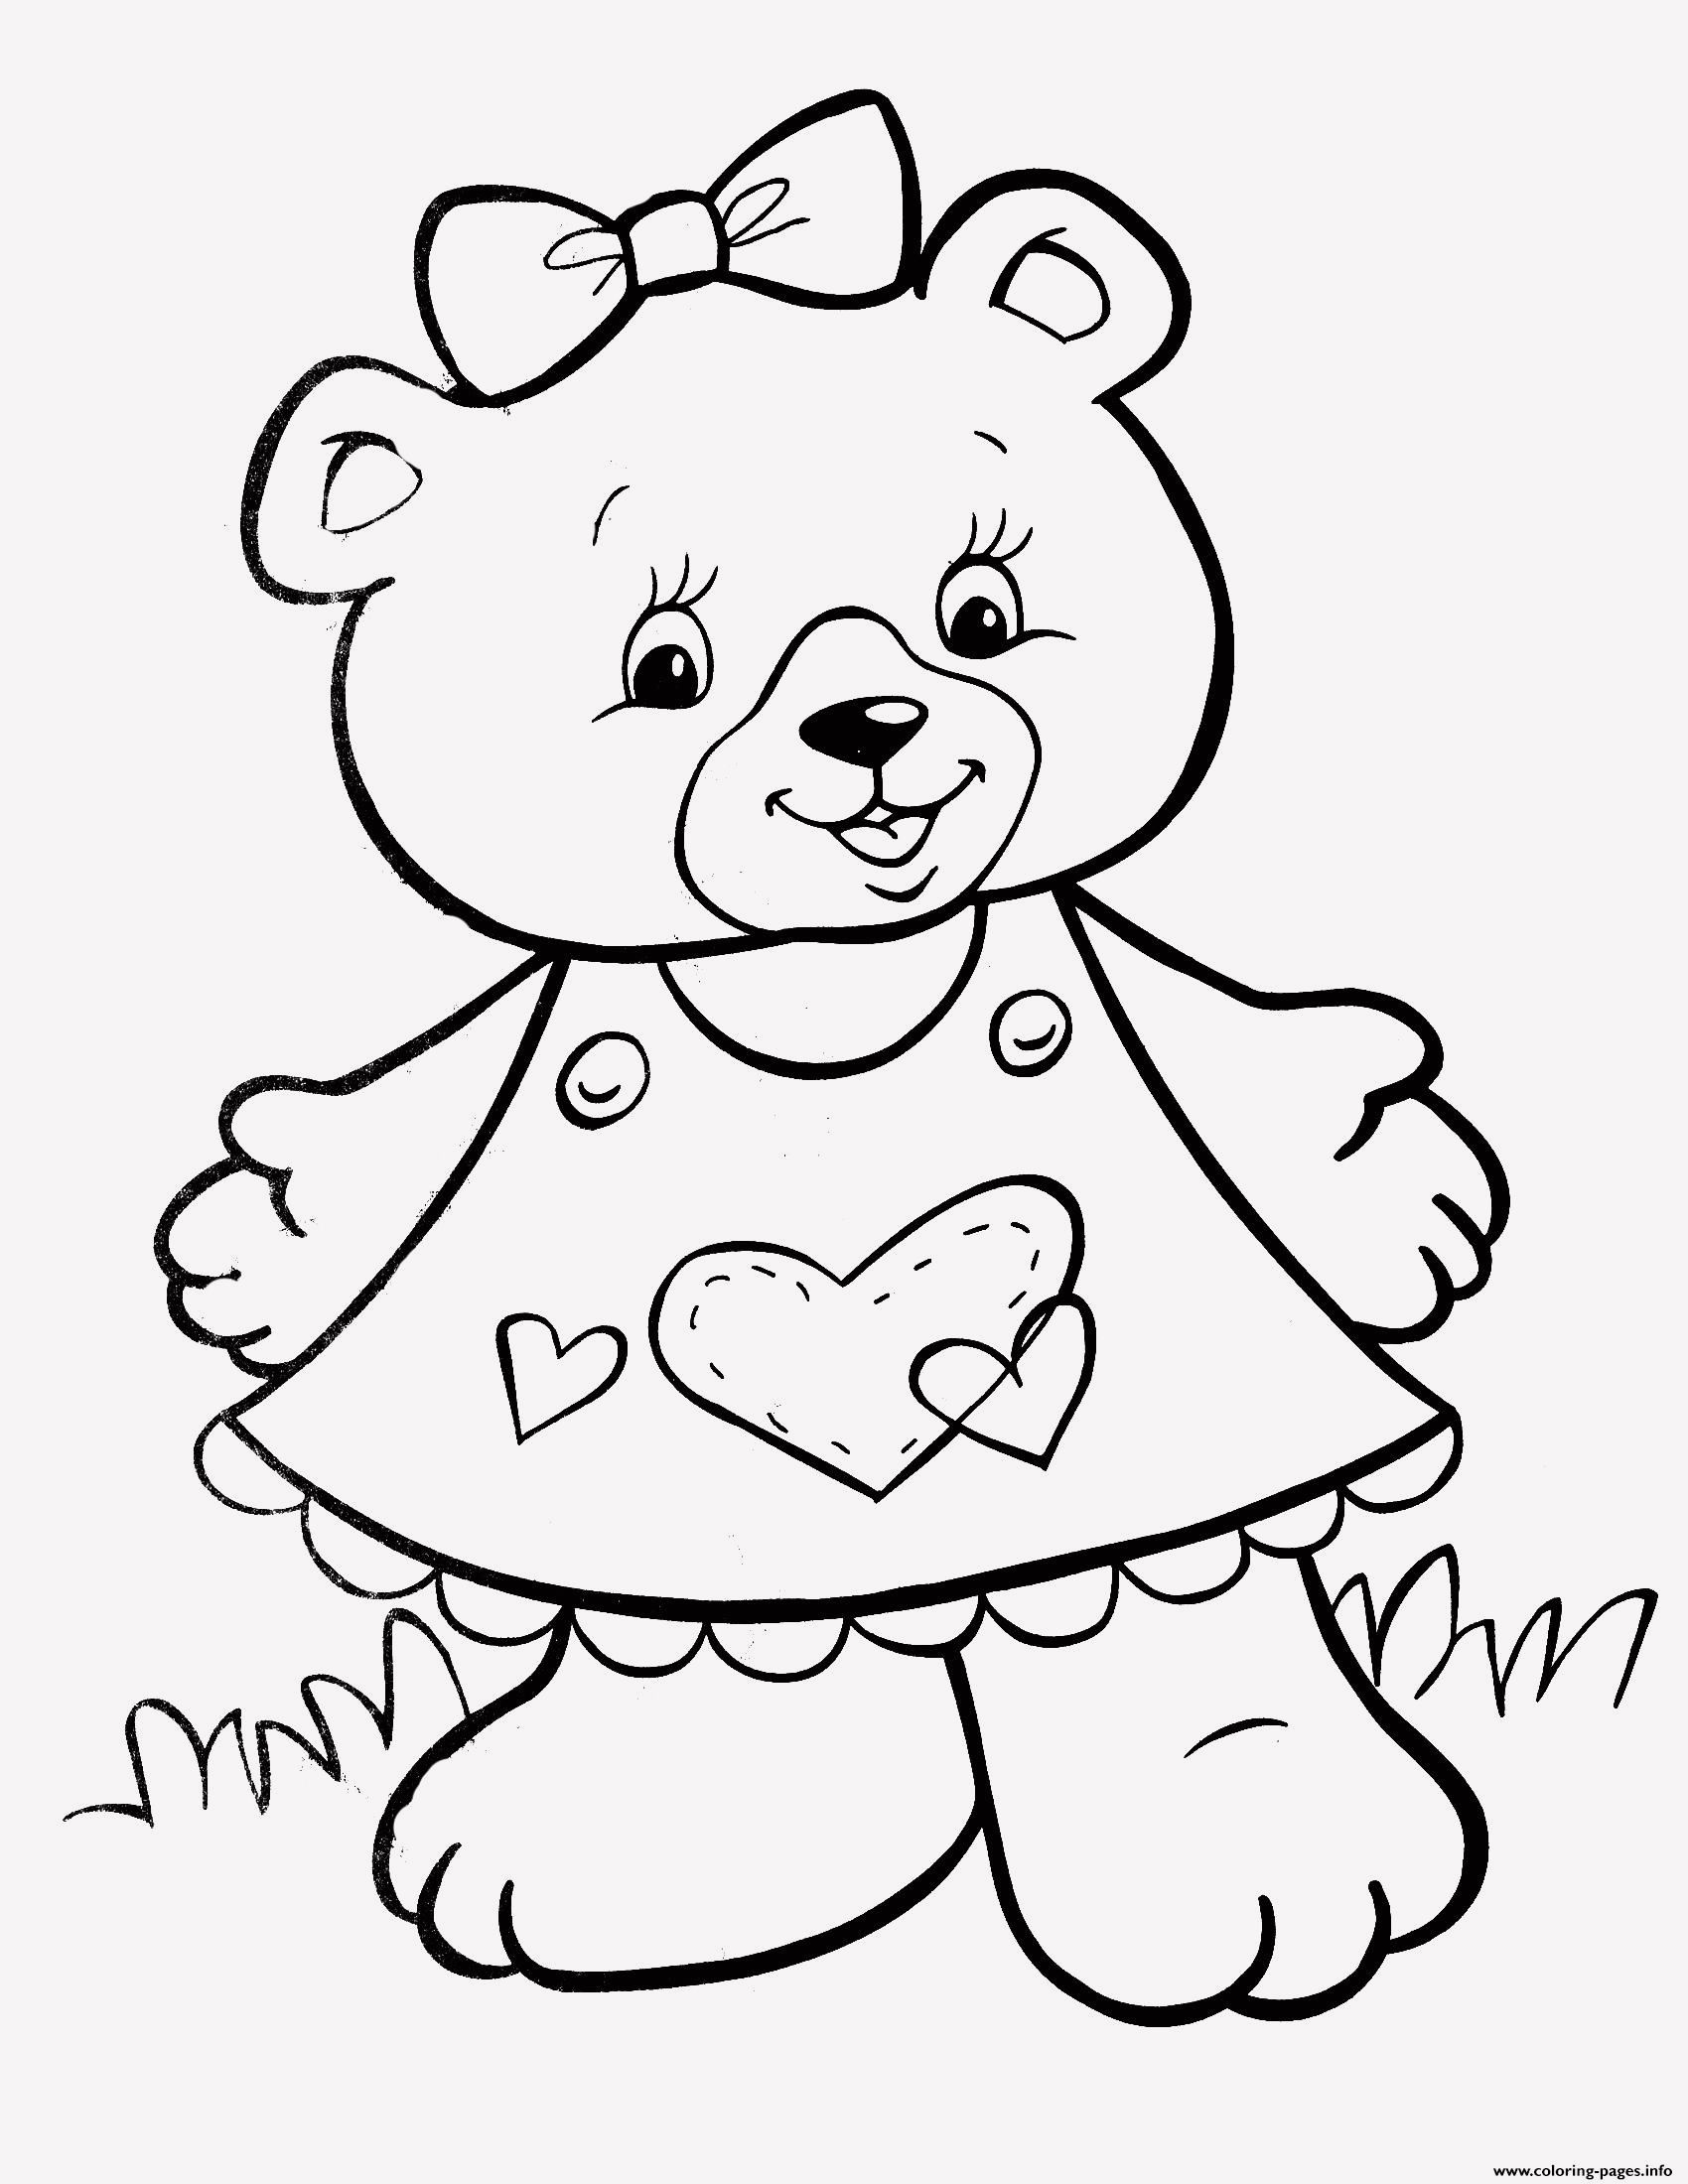 19 Easter Coloring Pages Crayola Teddy Bear Coloring Pages Bear Coloring Pages Thanksgiving Coloring Pages